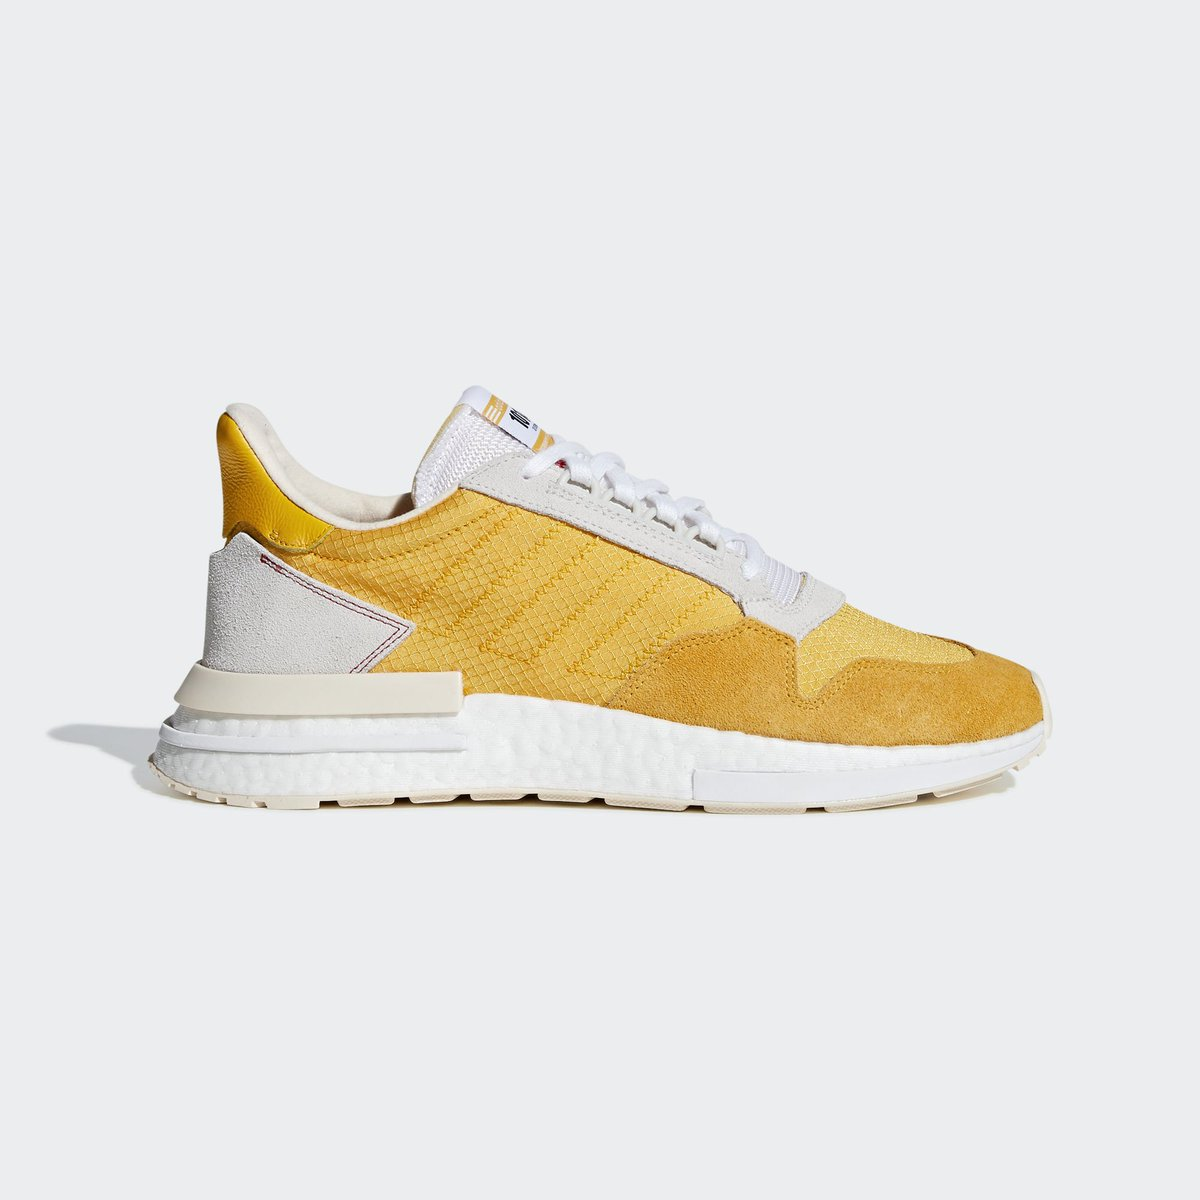 bd476497700a8 Under retail on  adidas US. adidas ZX 500 RM Marathon. Retail  140. Now   119 shipped. Sign up for newsletter for 15% off. ZX 500 RM  http   bit.ly 2PXAJWR ...